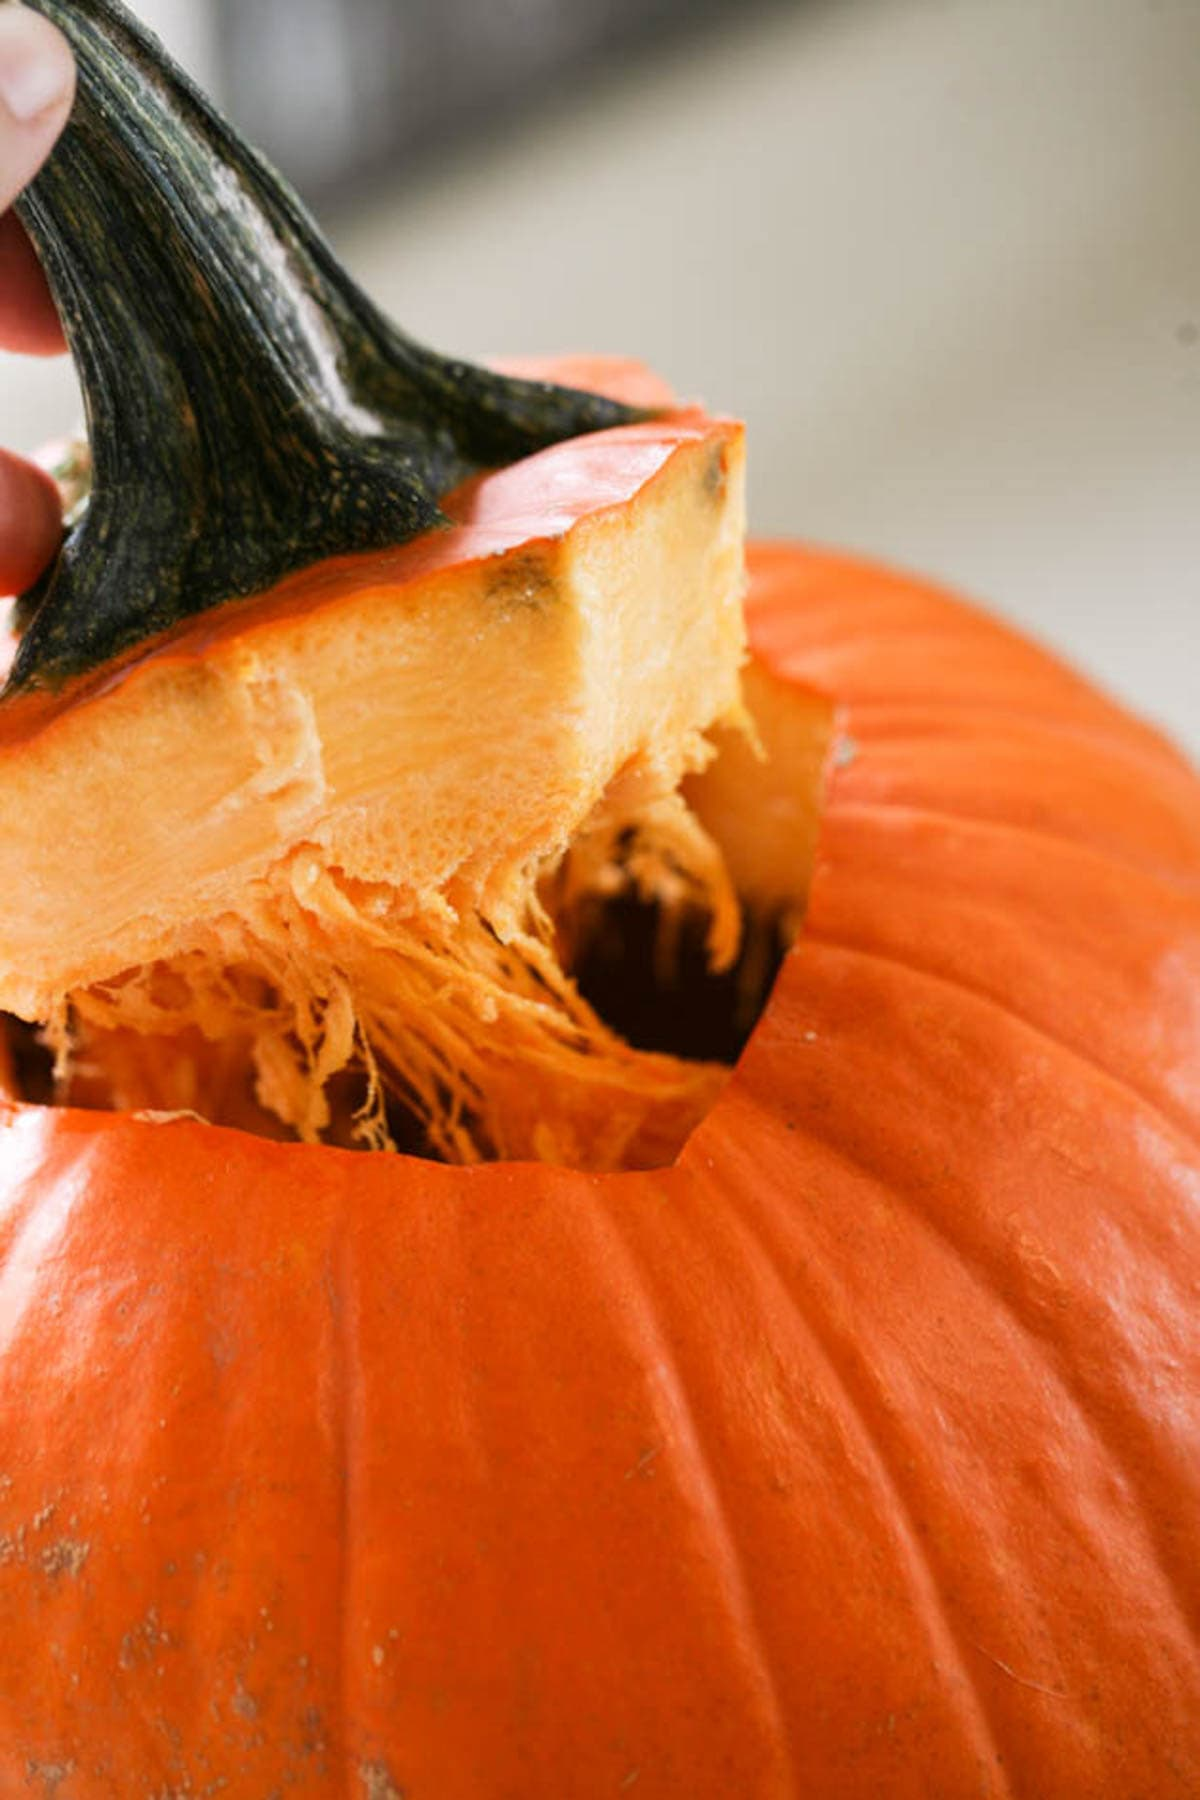 Removing the stem of the pumpkin.